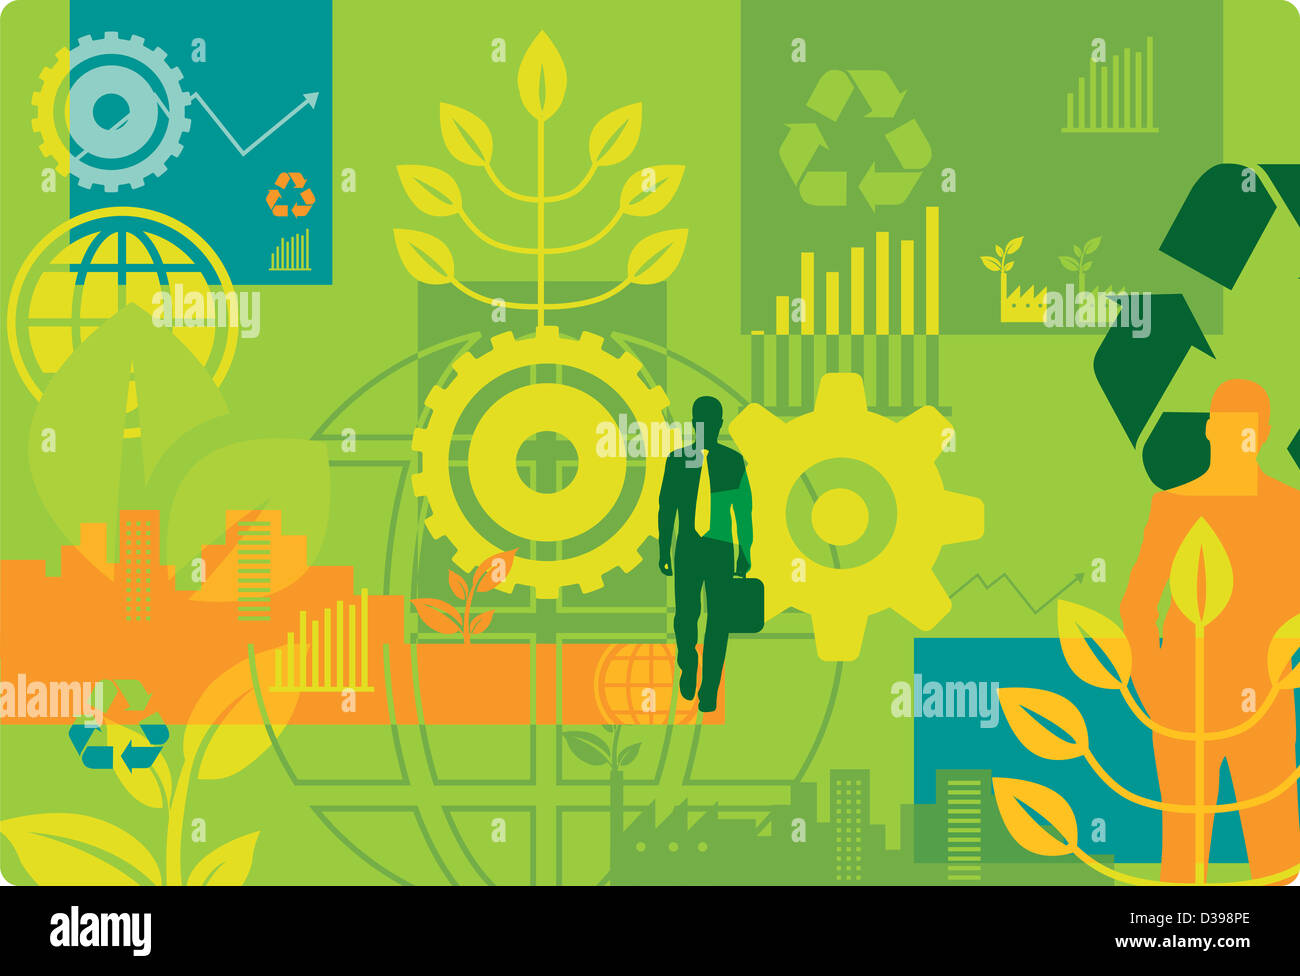 Illustrative image of go green concept - Stock Image